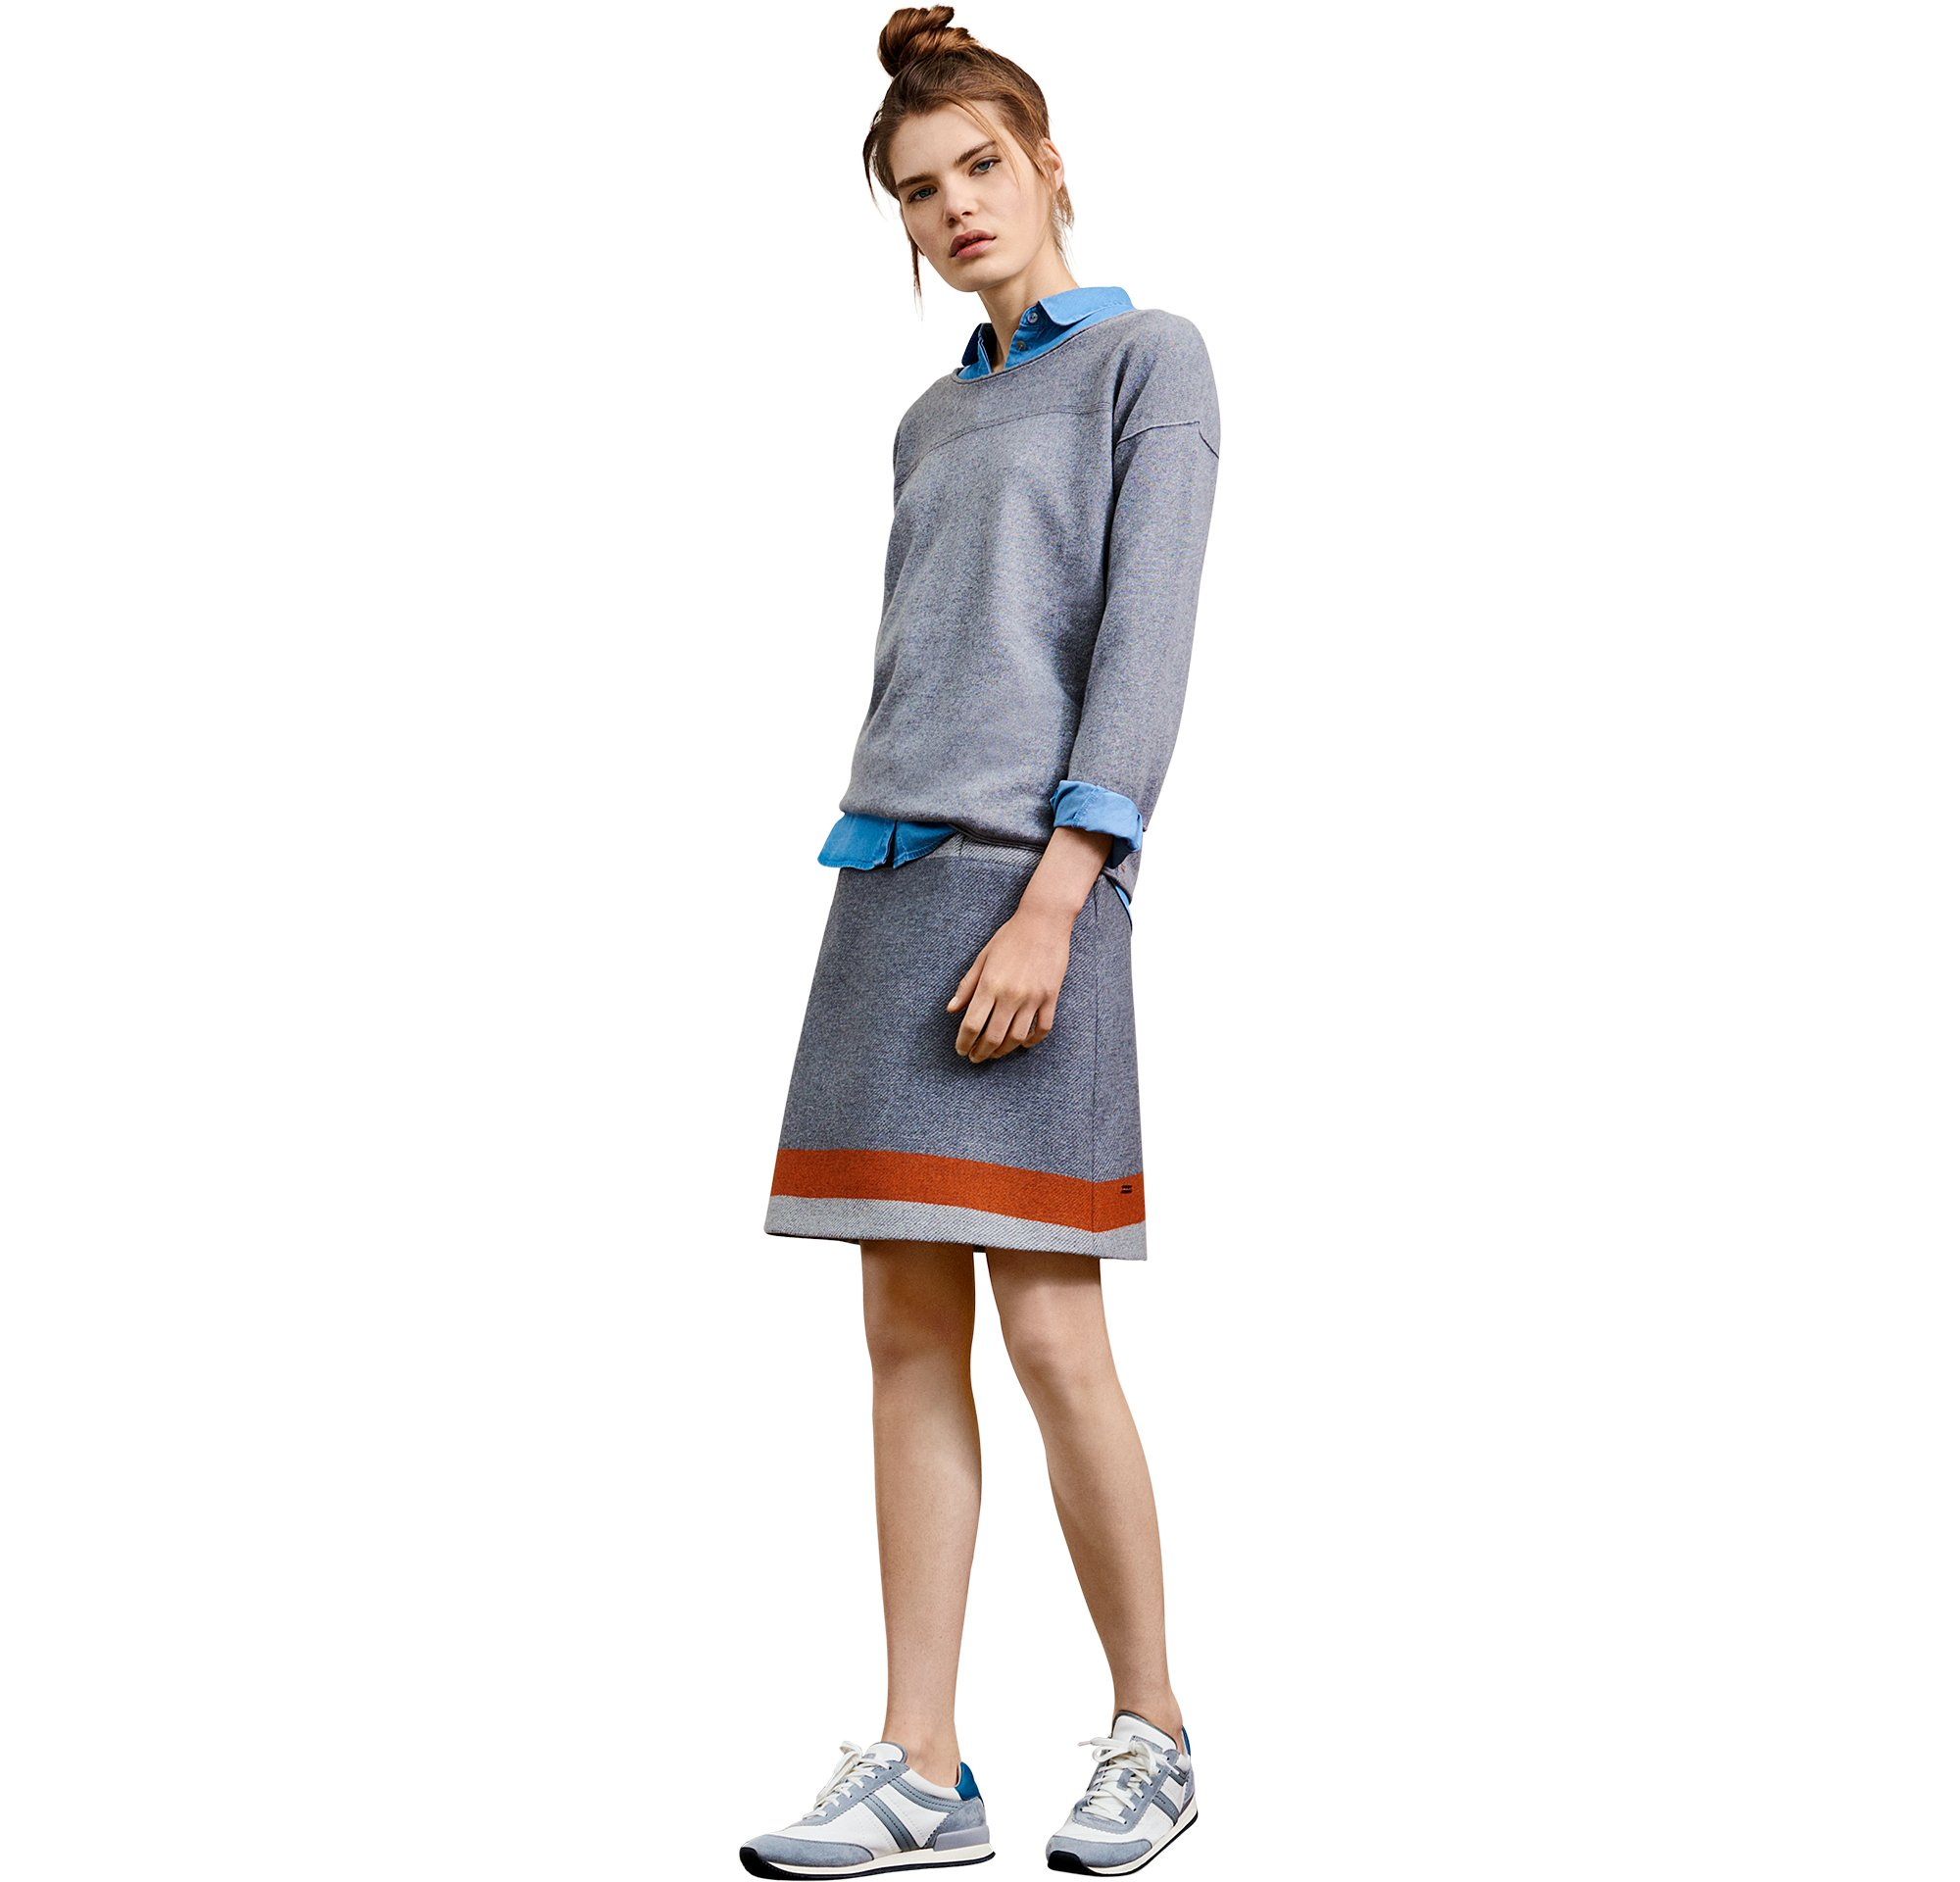 Grey knitwear over blouse and skirt by BOSS Orange